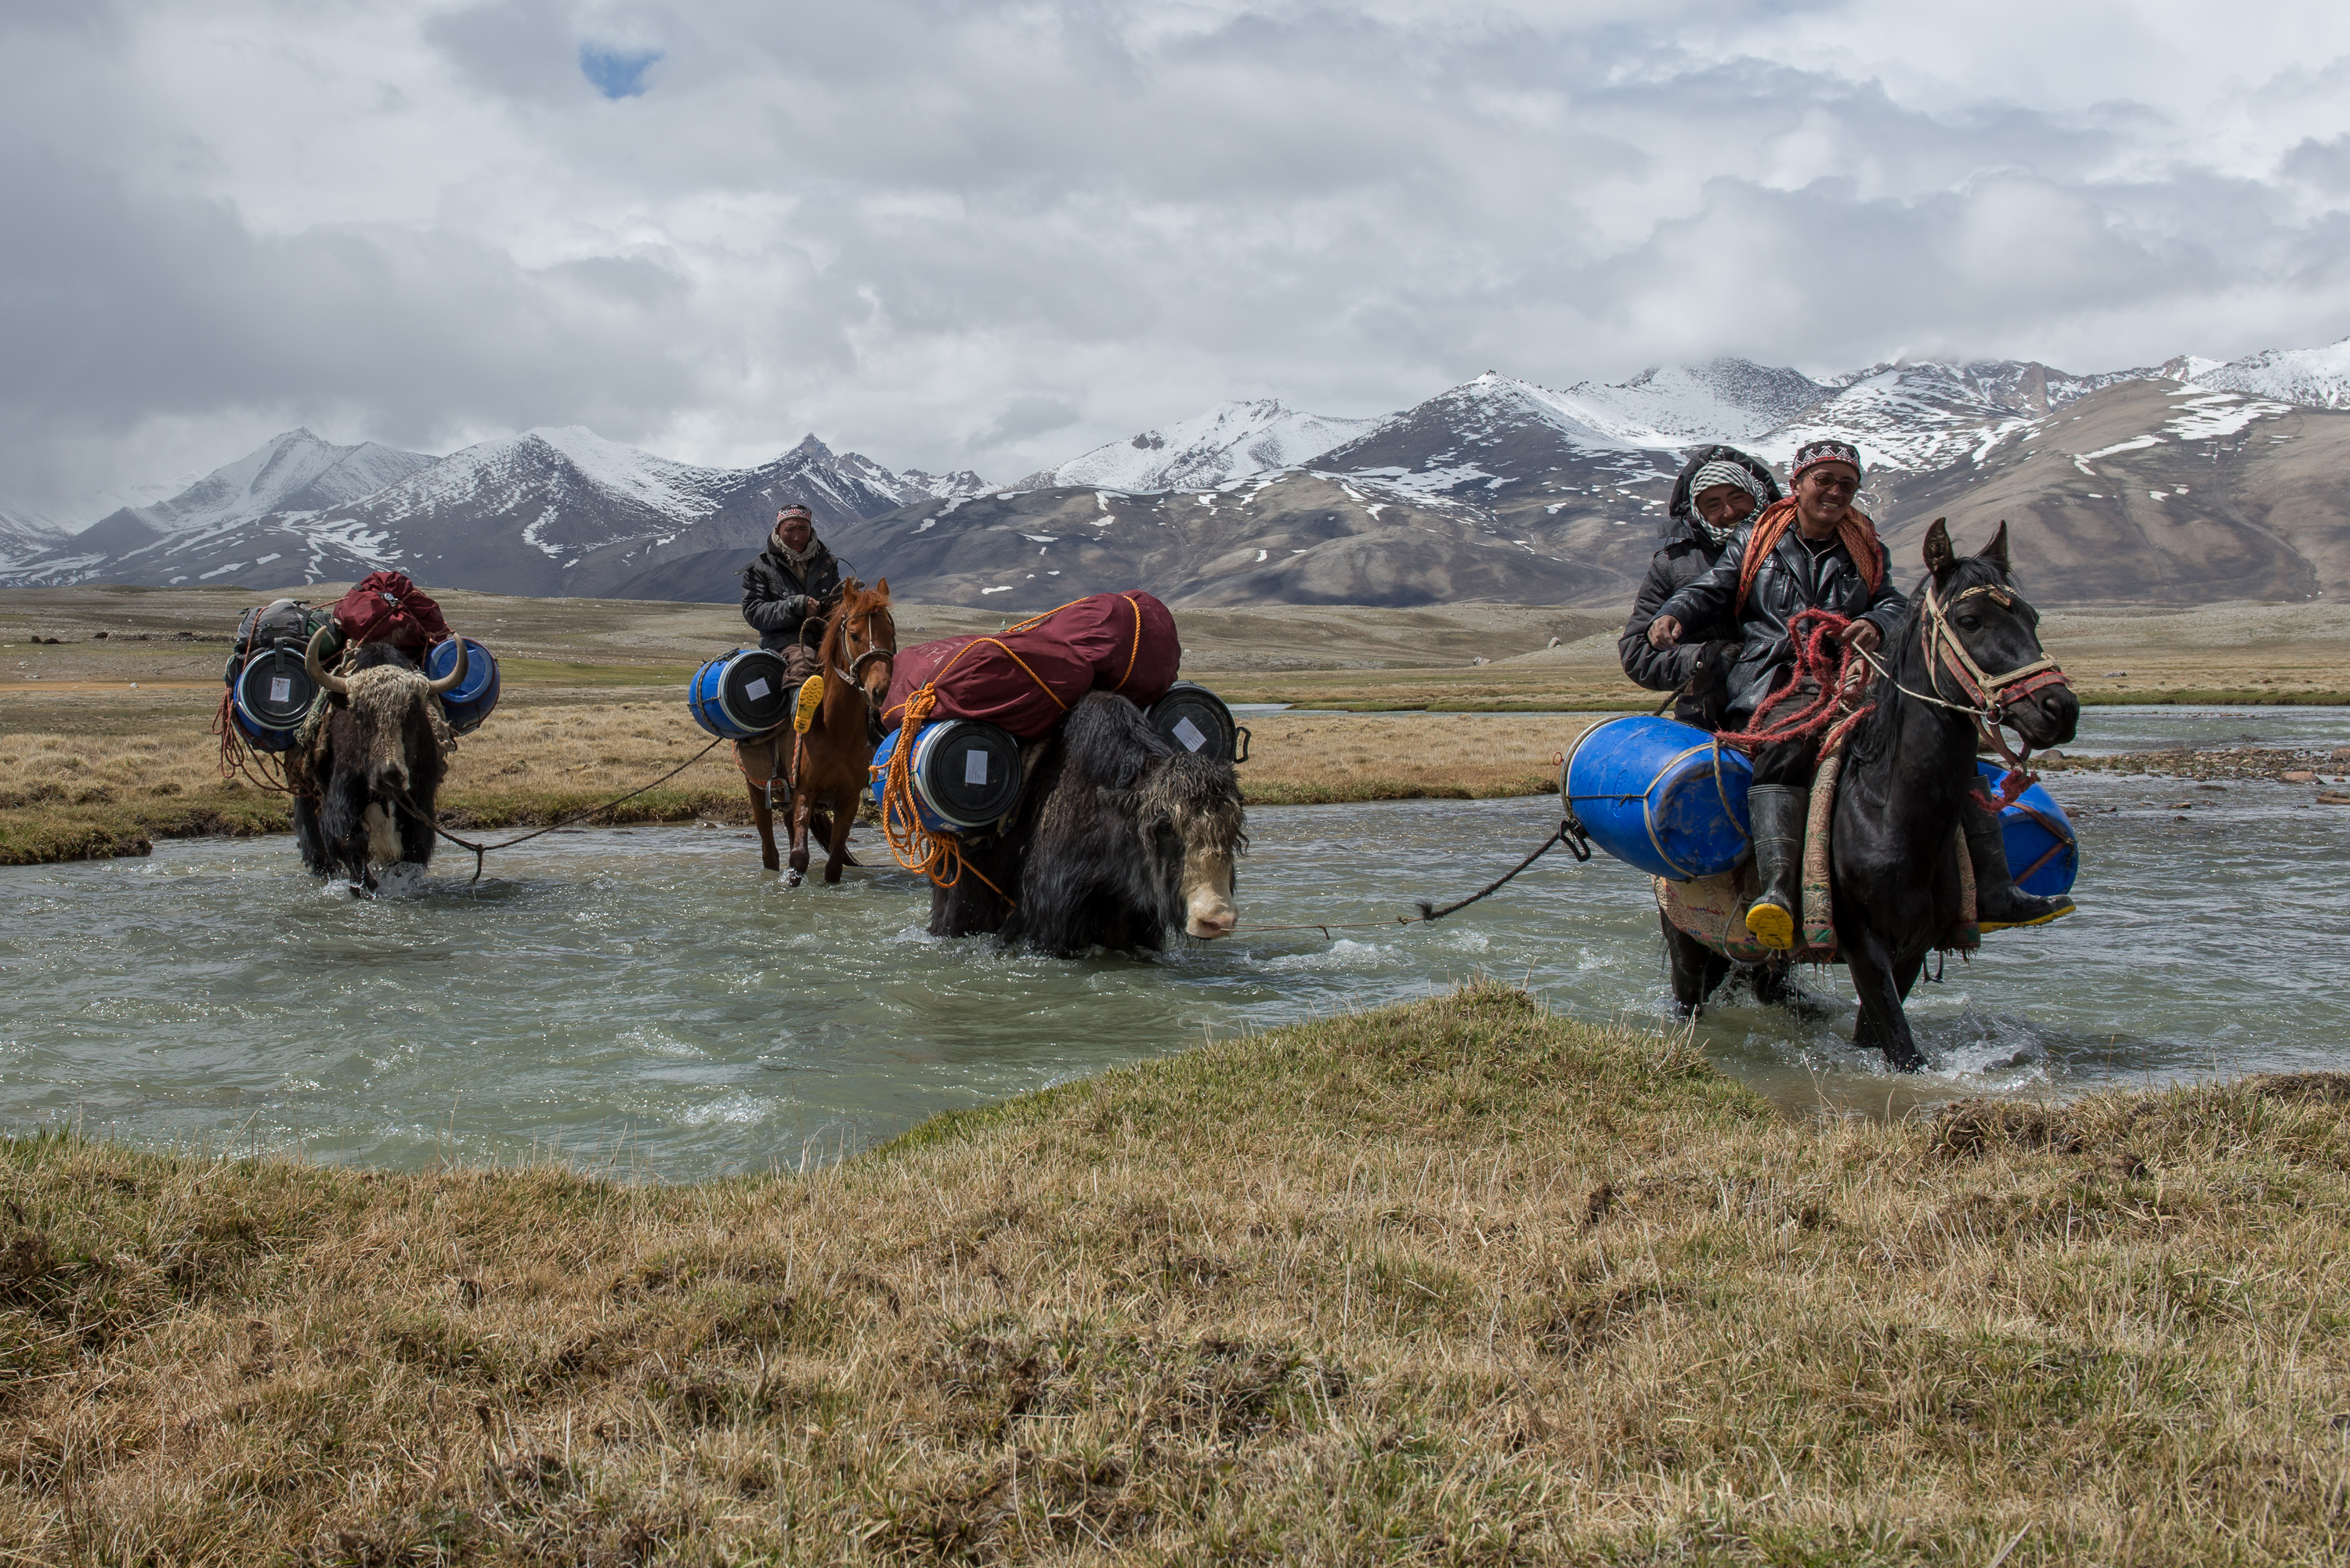 River crossing in Big Pamir